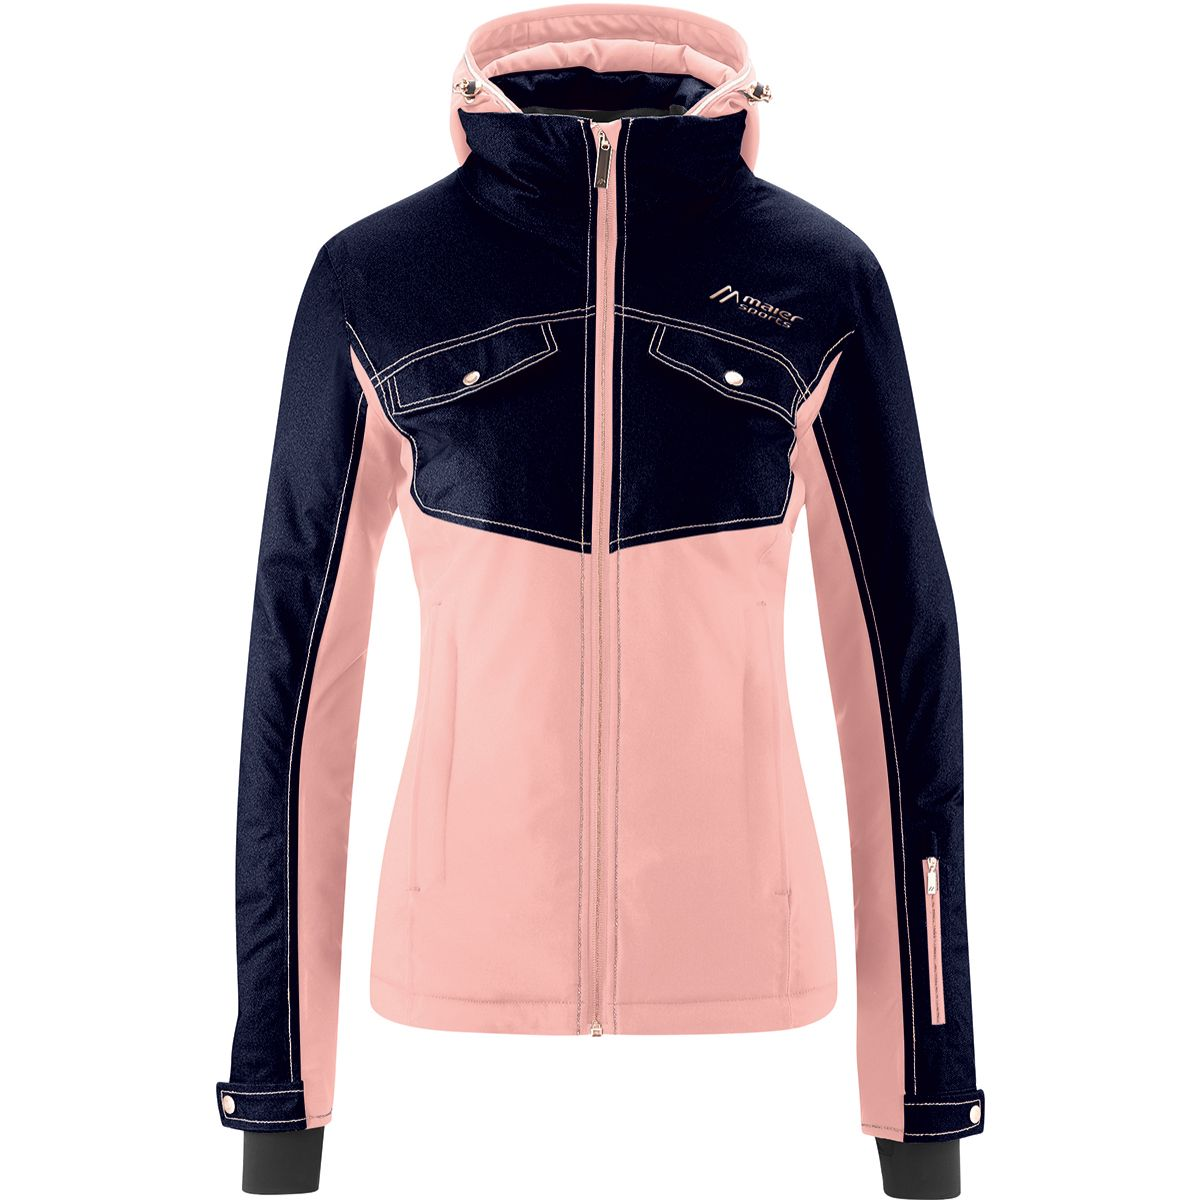 Maier Sports Damen Statement Piece Jacke (Größe L, M, Pink) | Skijacken > Damen